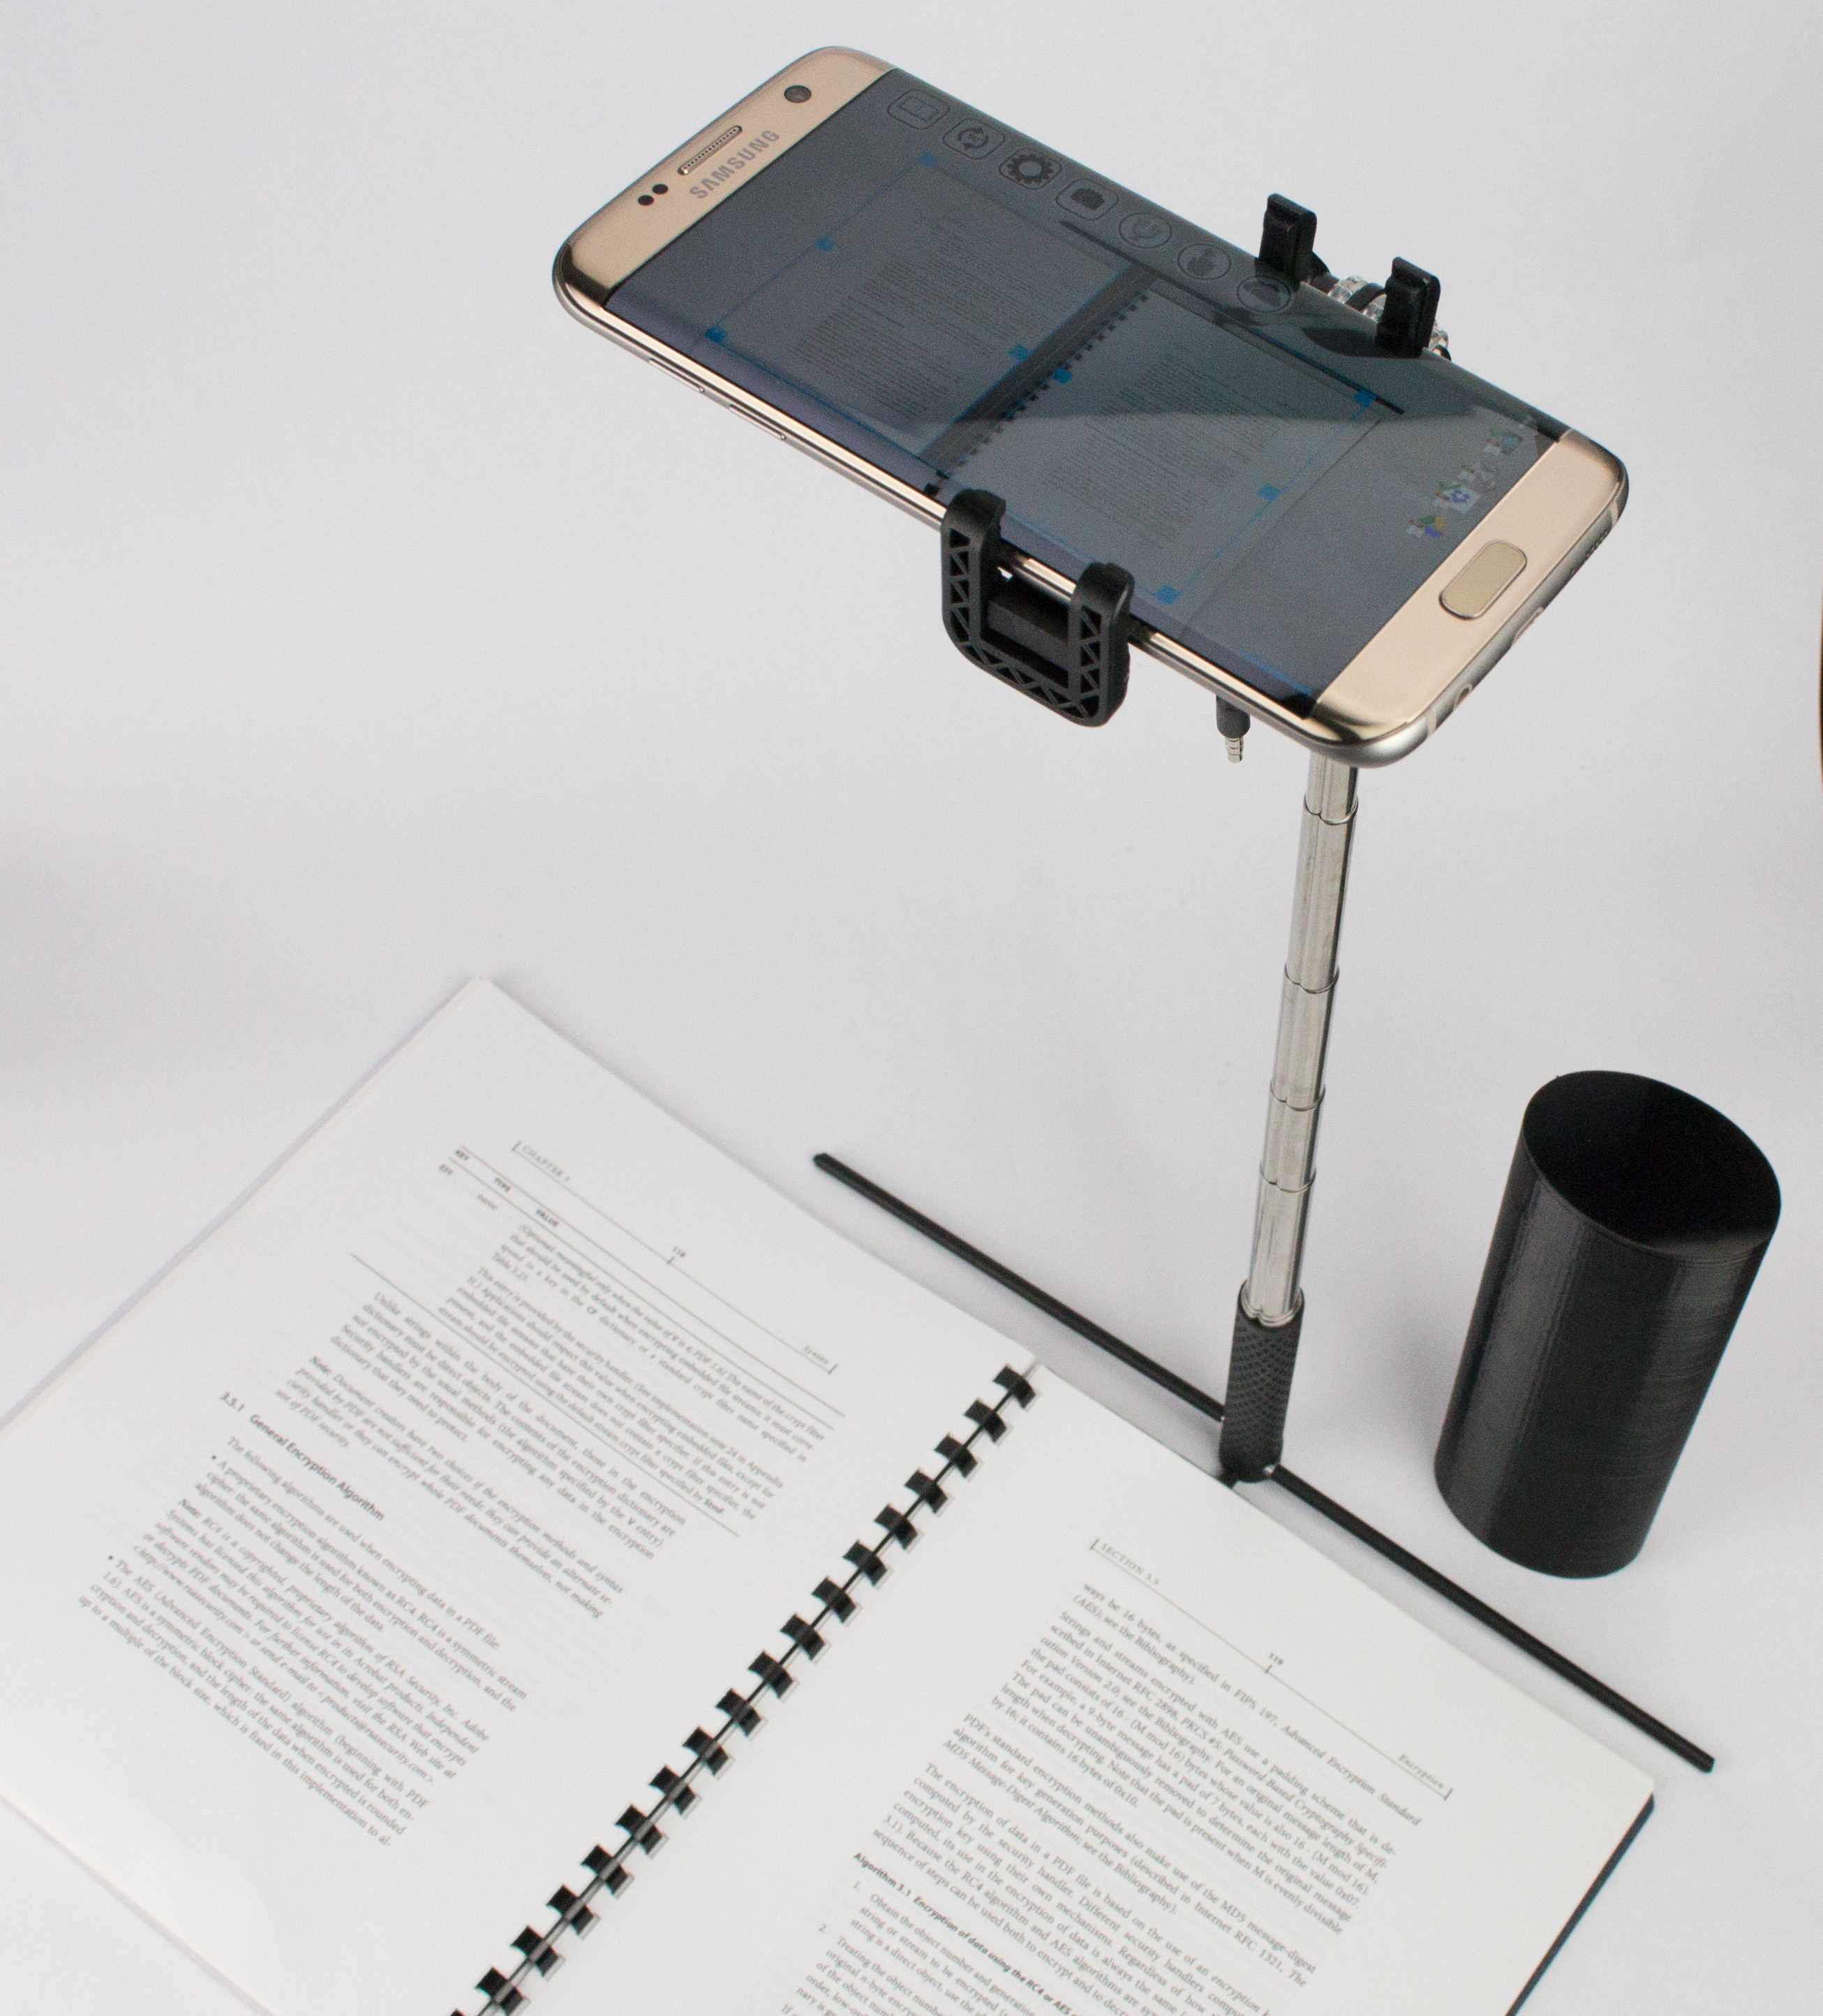 Skanstick Pro – smart mini scanner with AR & Bluetooth remote control and case